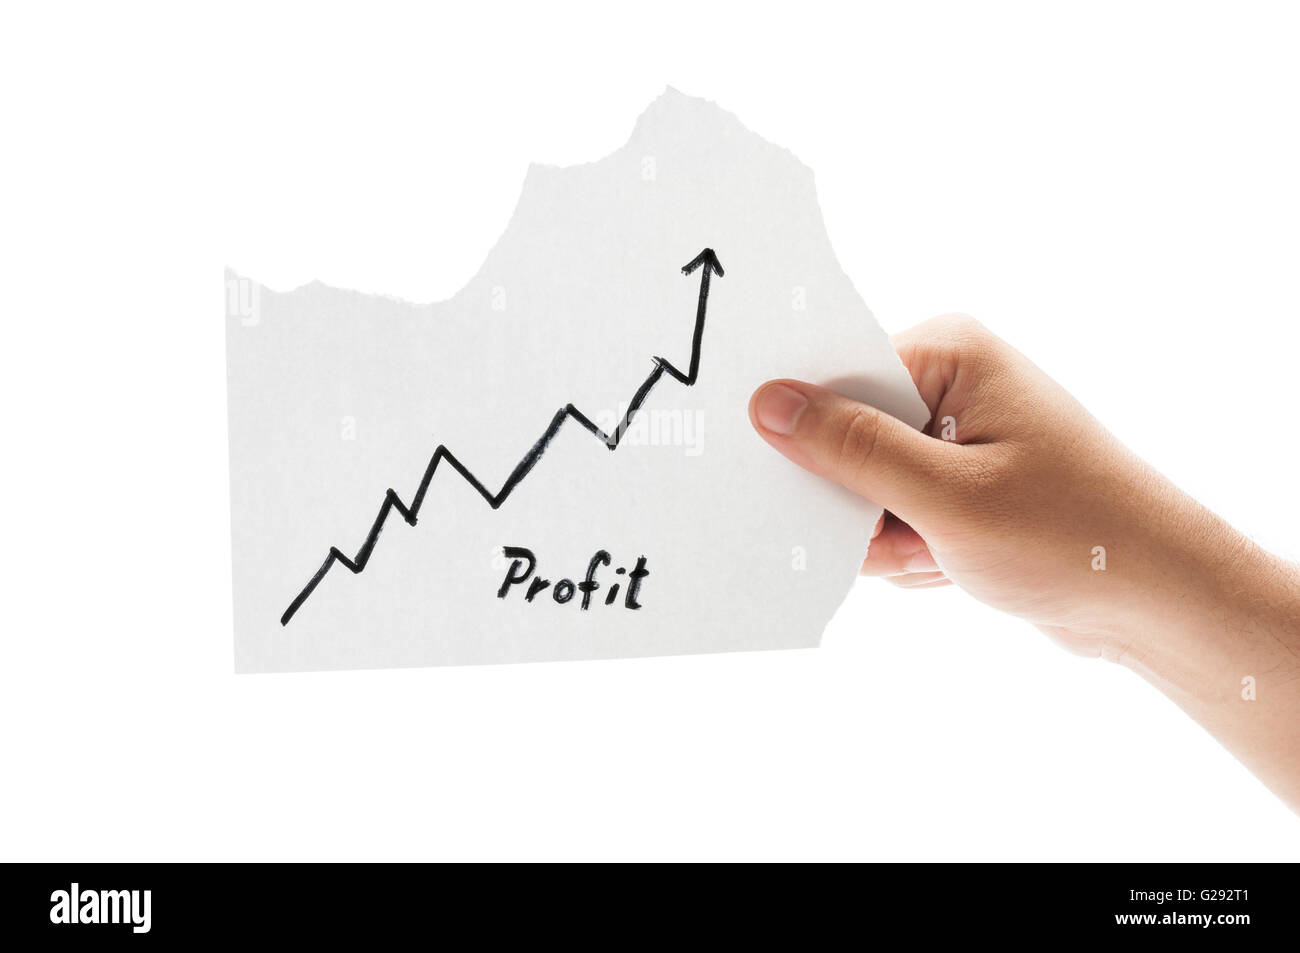 Growing profit chart concept using a hand holding a piece of paper and the text written by hand with a permanent - Stock Image